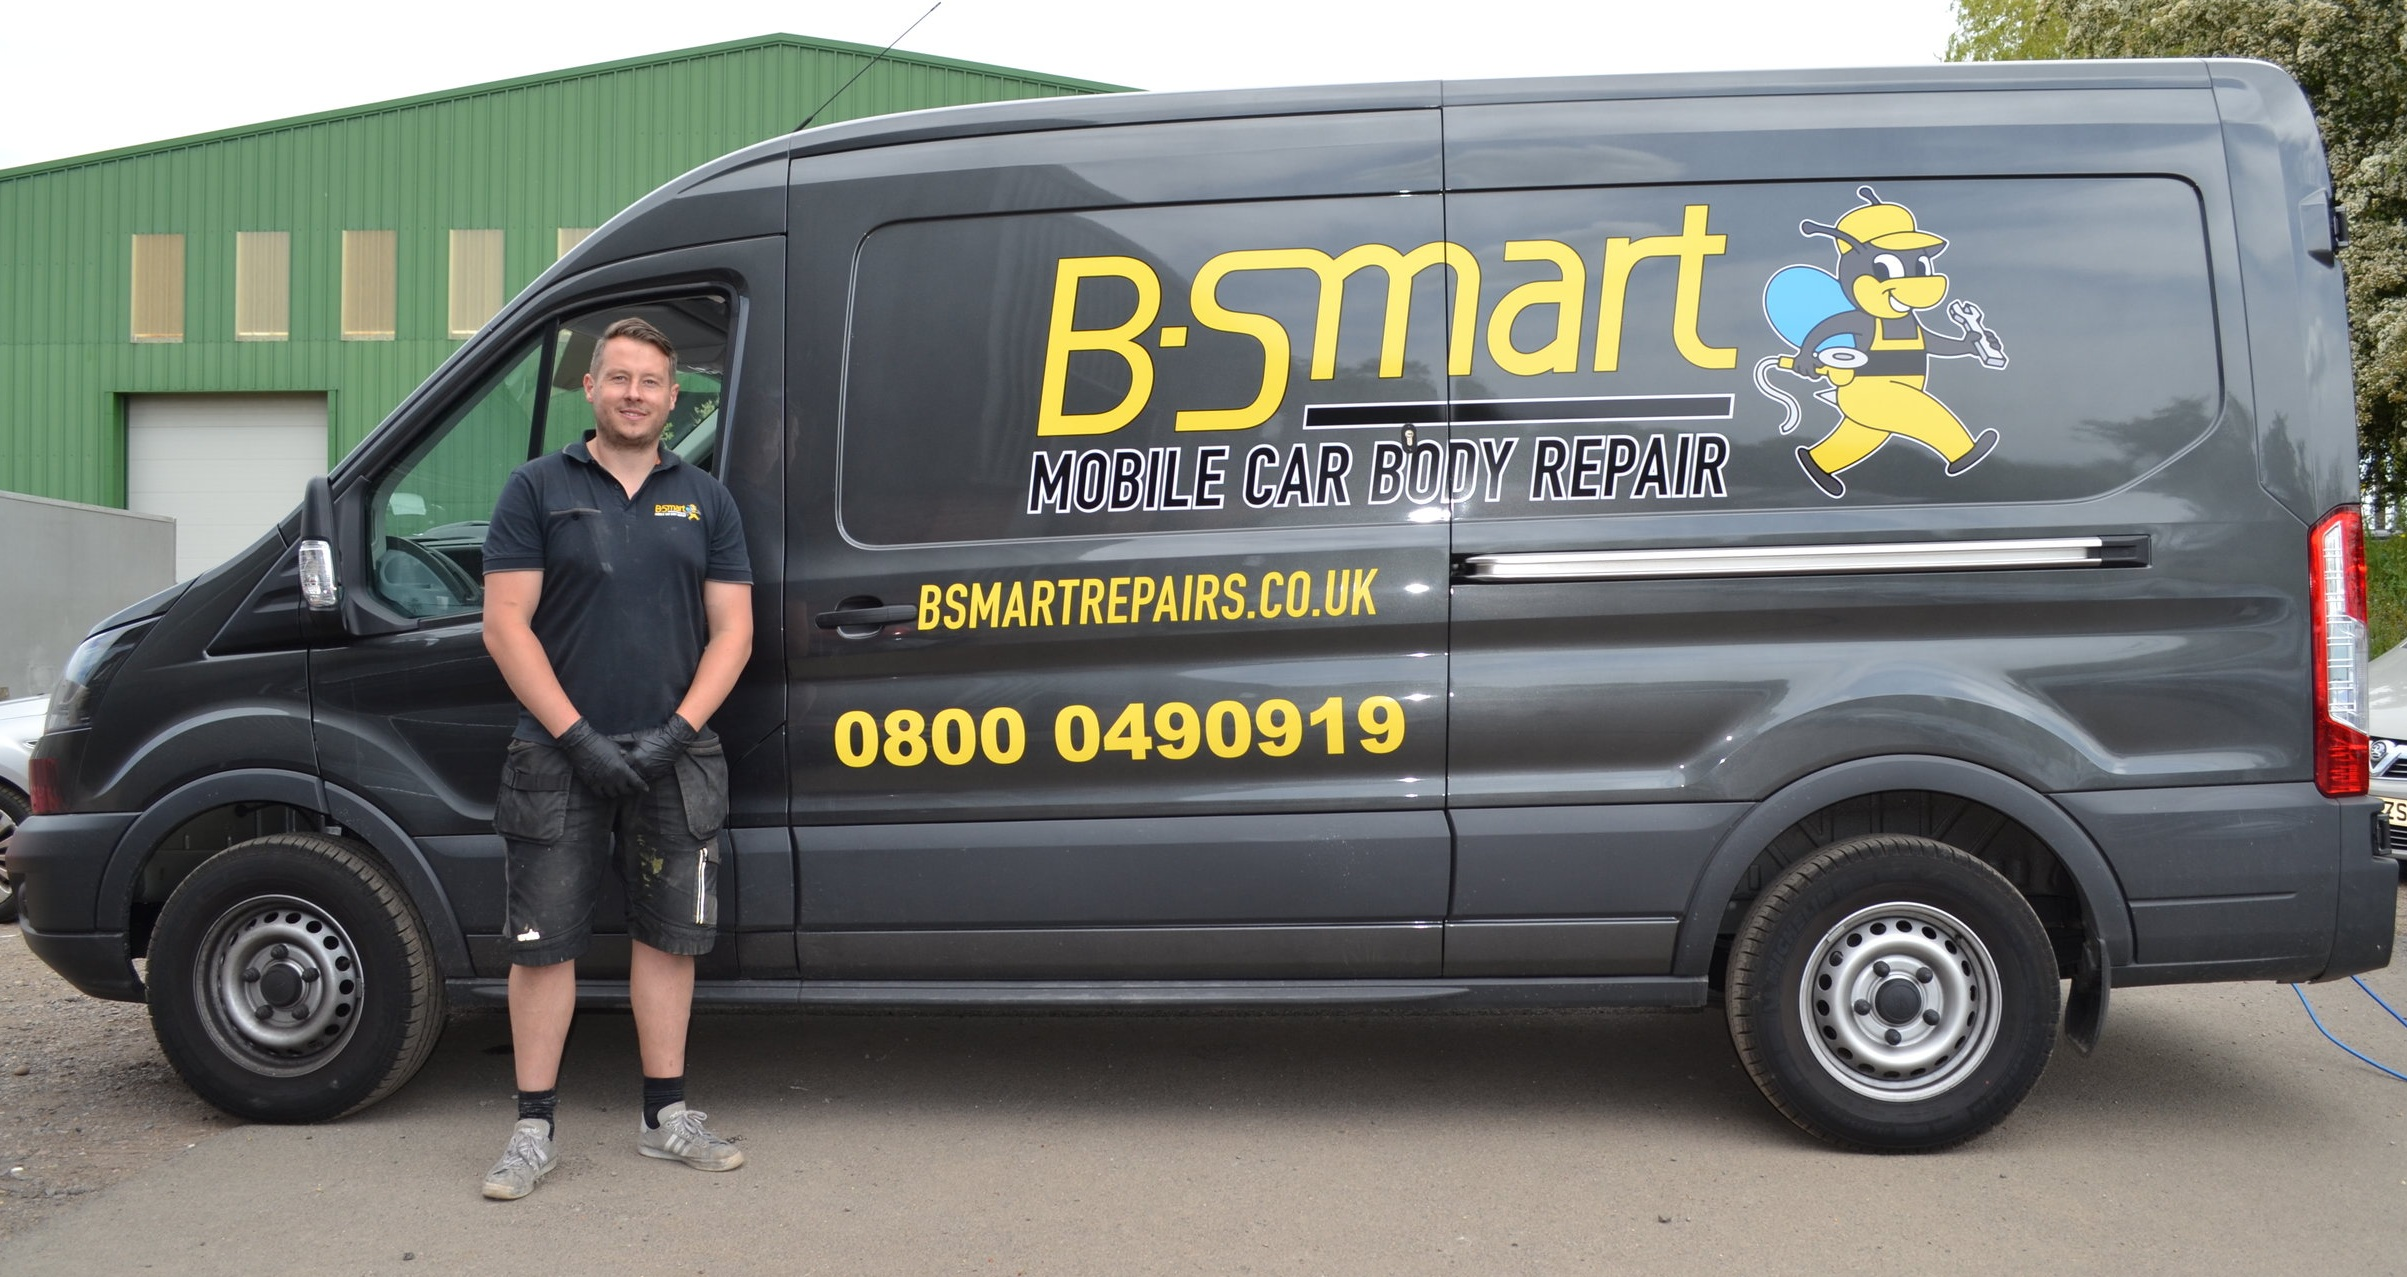 B-Smart Vehicle Repair - Our new mobile service has launched - repairing dents, scuffs, scratches and alloy wheels whilst you wait.